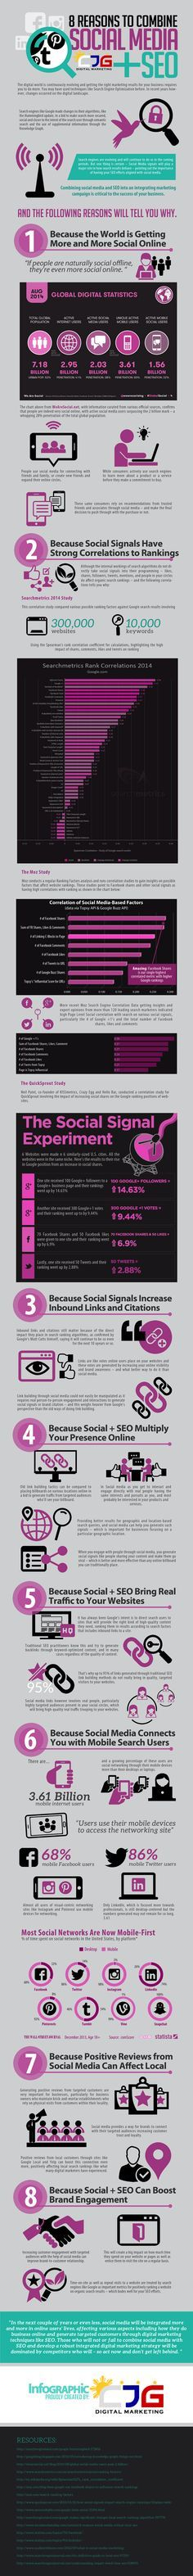 "SOCIAL MEDIA - ""8 Reasons to Combine Social Media and SEO [#INFOGRAPHIC]""."